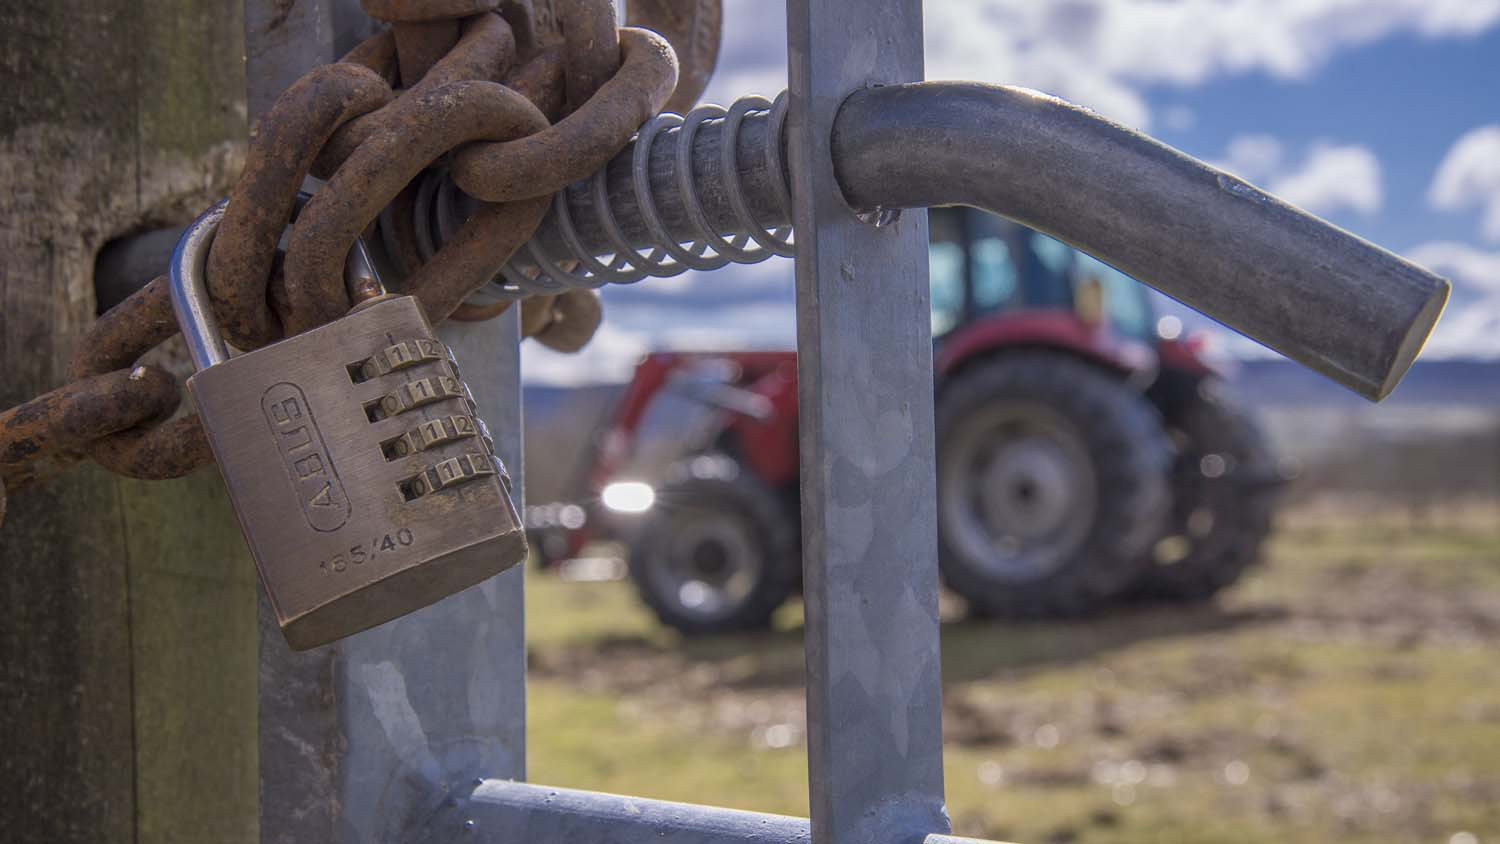 Is your farm secure? Welsh police warn farmers after a series of ATV thefts